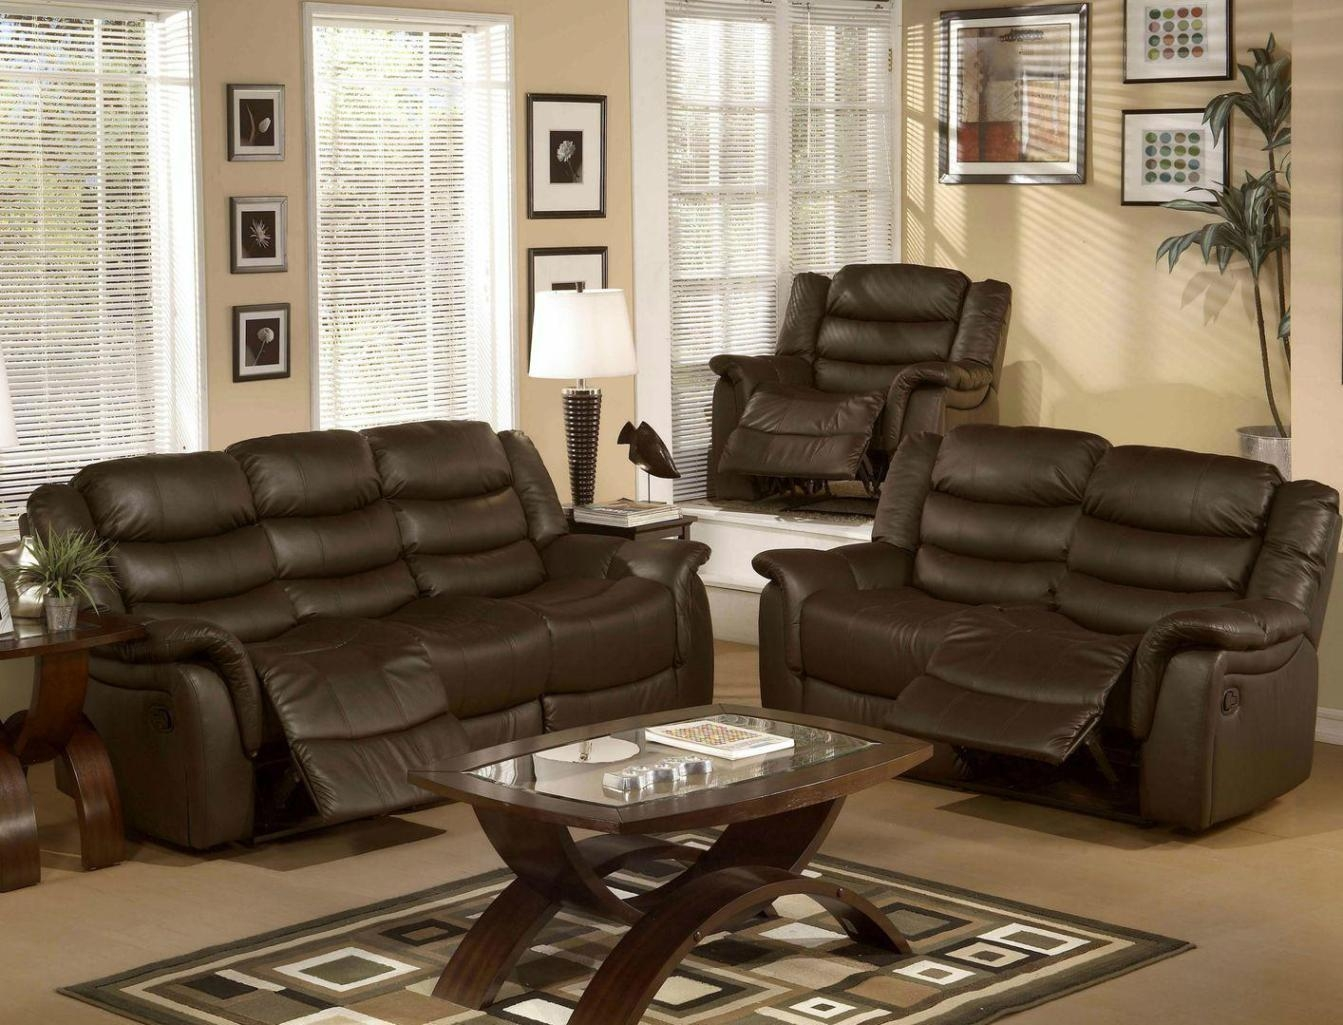 Sofas Center : Unforgettable Reclining Sofa Loveseat Photo Ideas With Reclining Sofas And Loveseats Sets (Image 19 of 20)